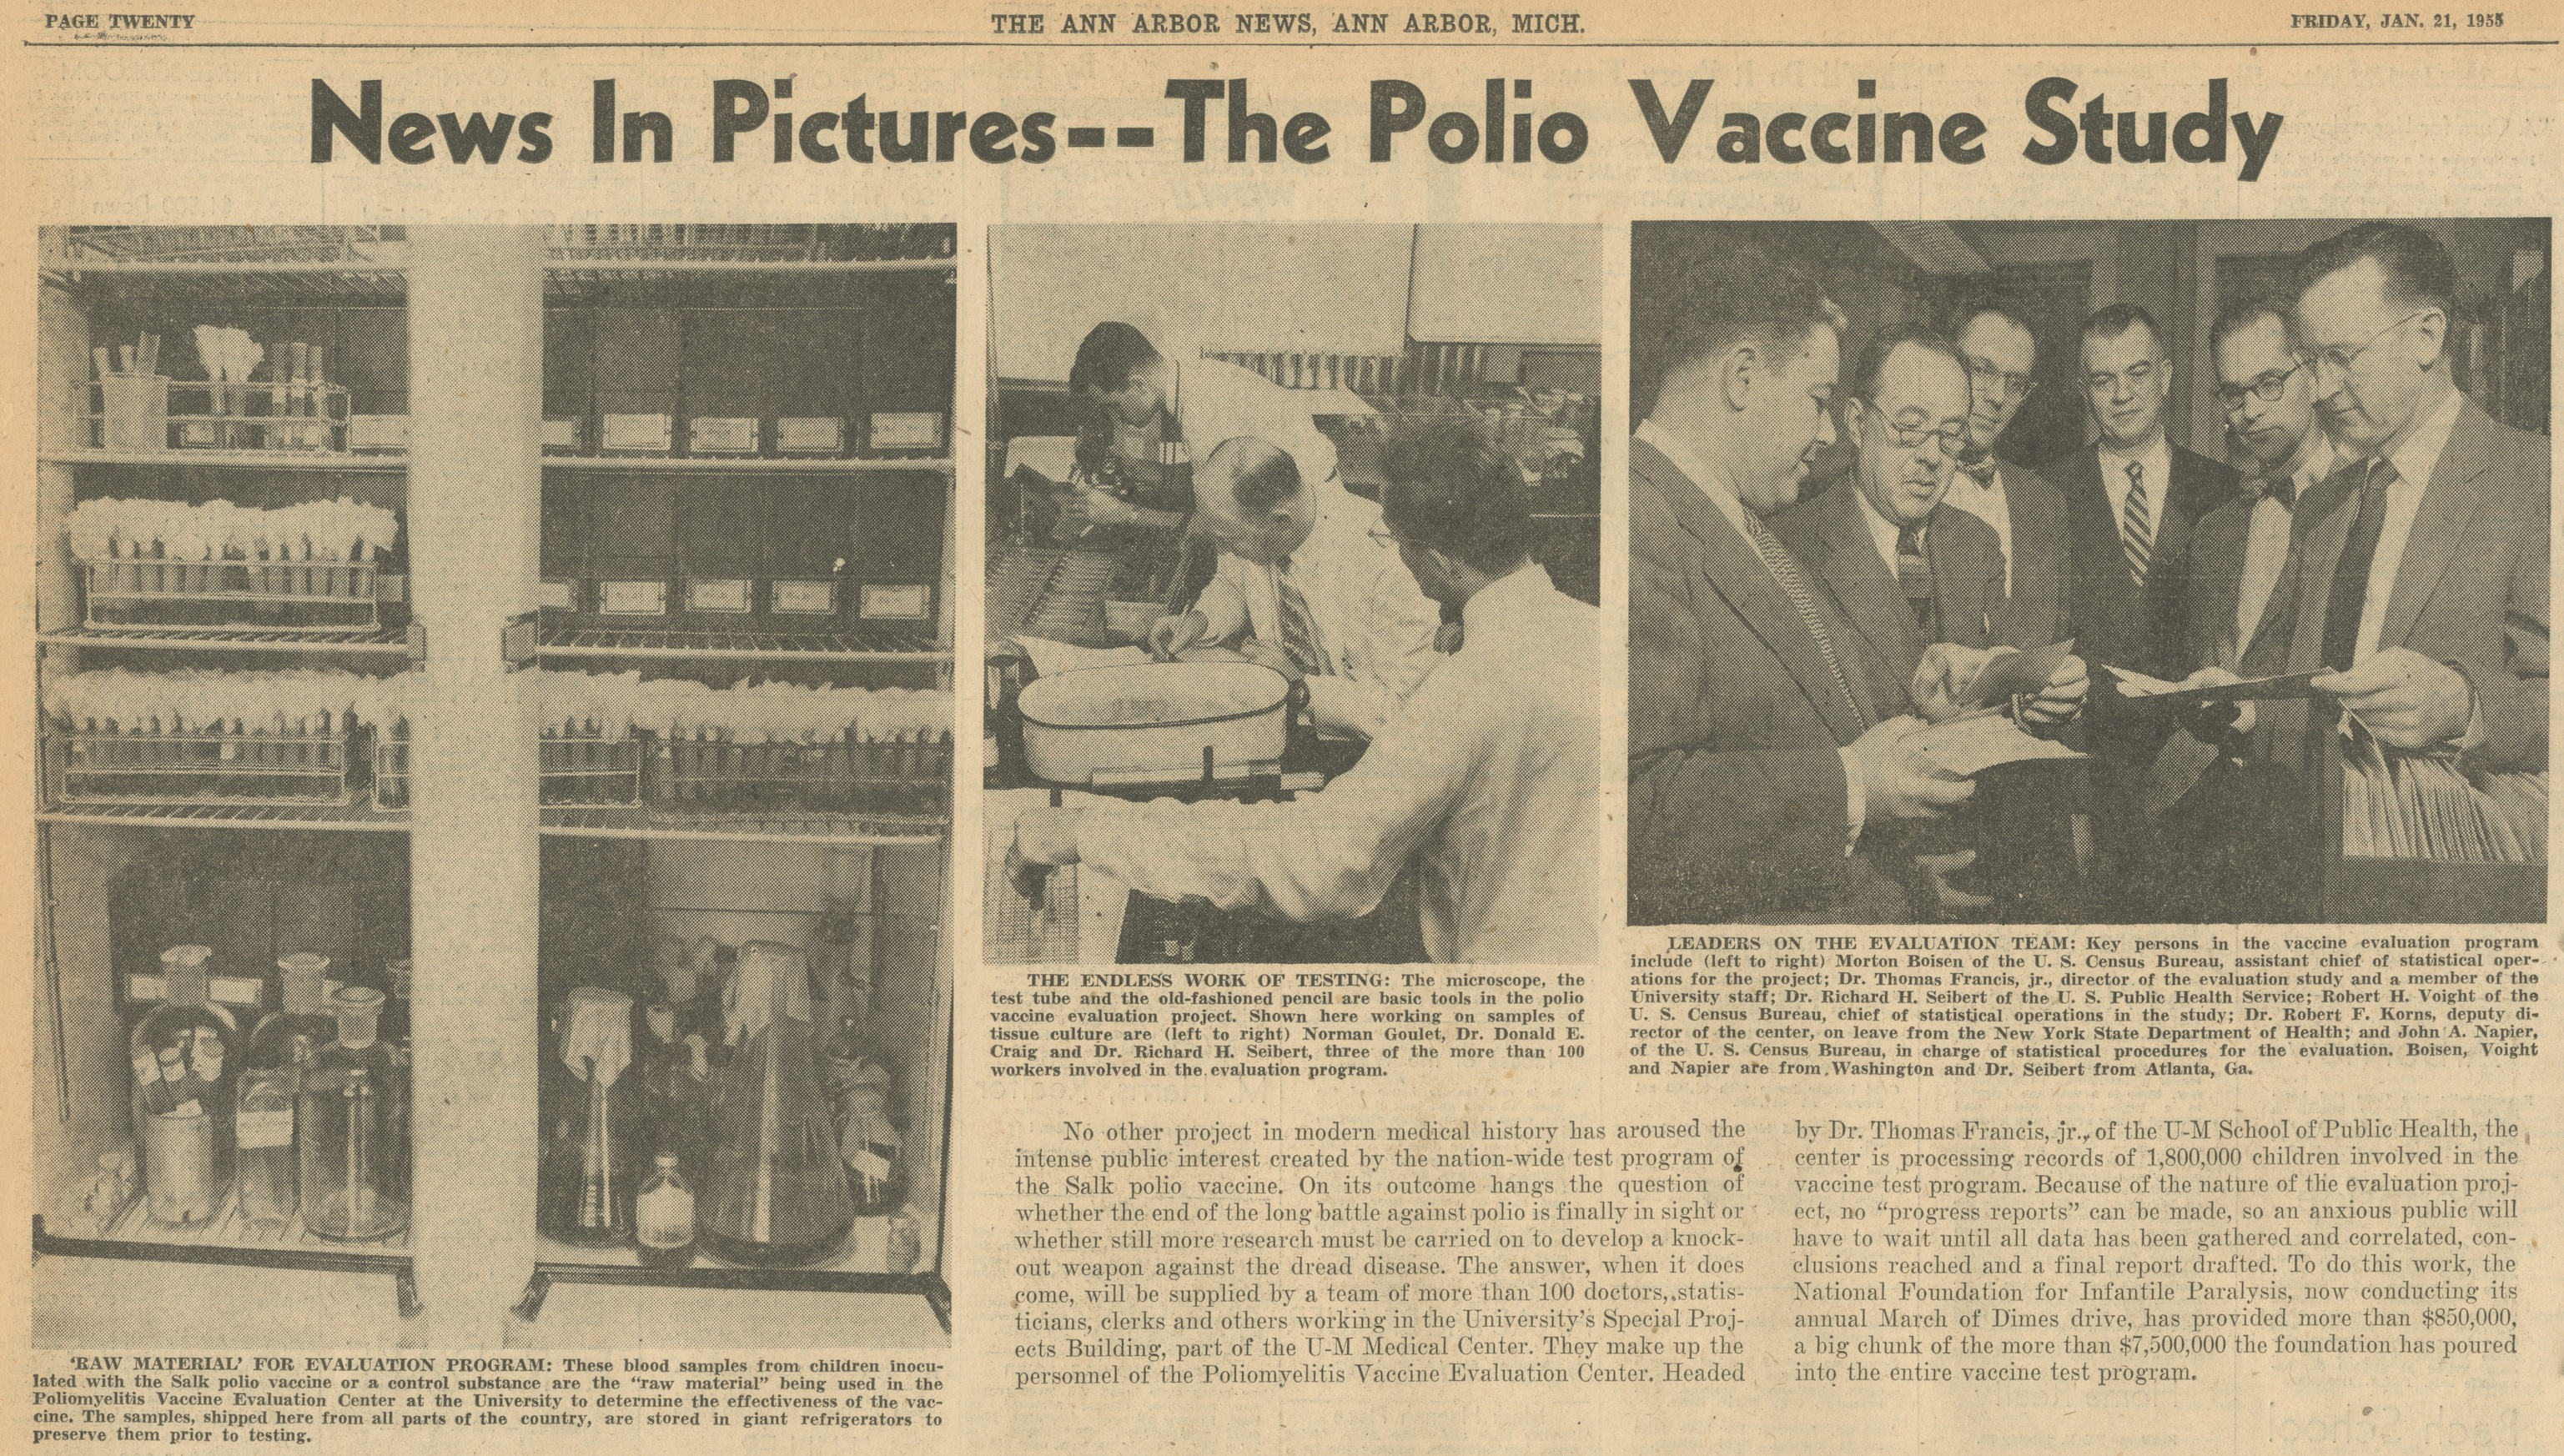 News In Pictures -- The Polio Vaccine Study image